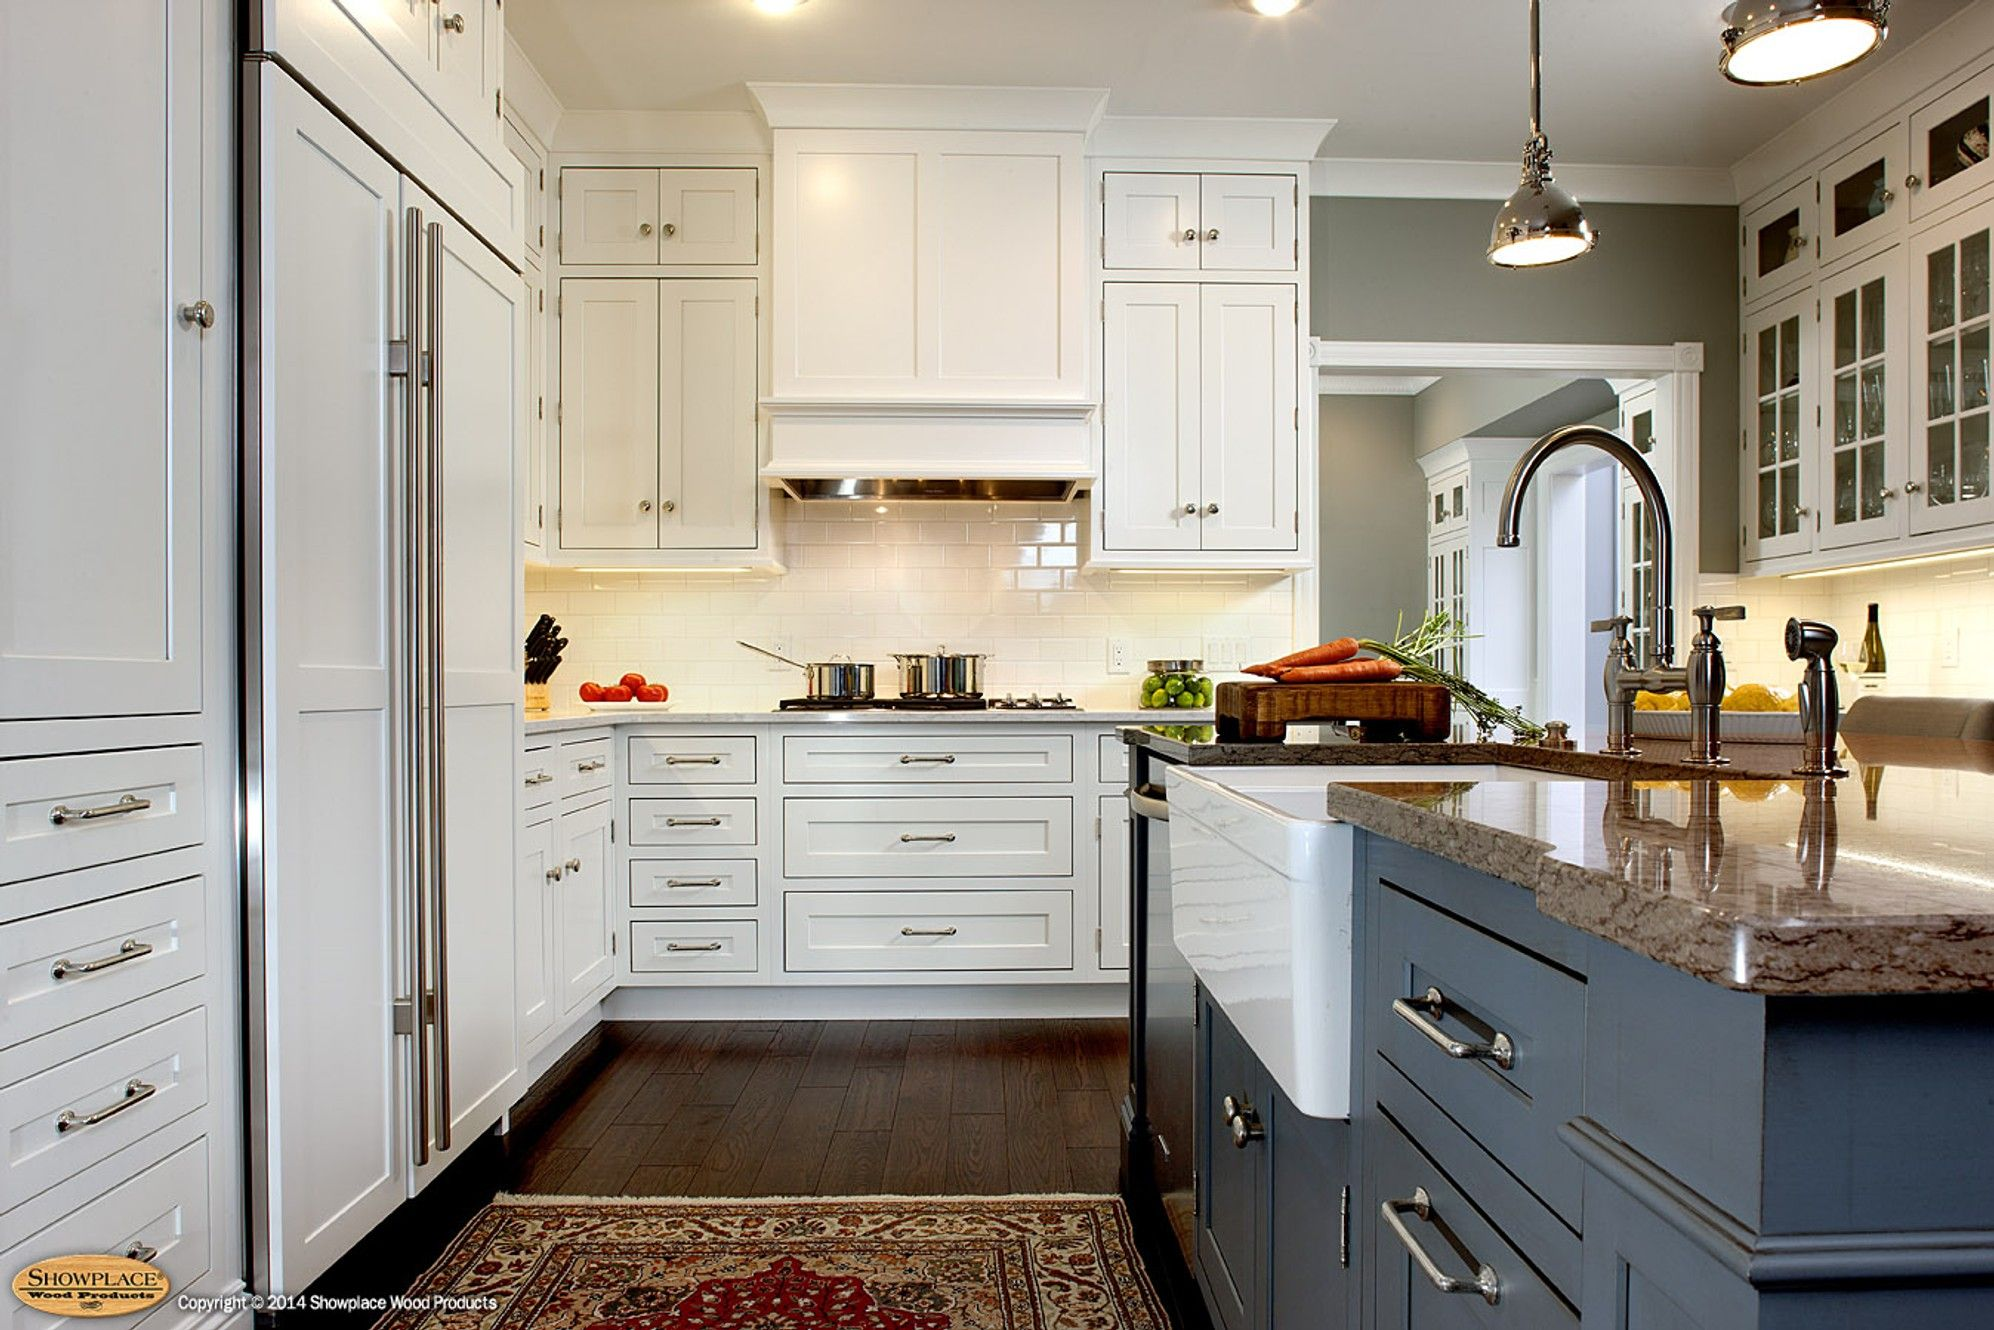 southwest kitchen and bath is where to buy cabinets in the